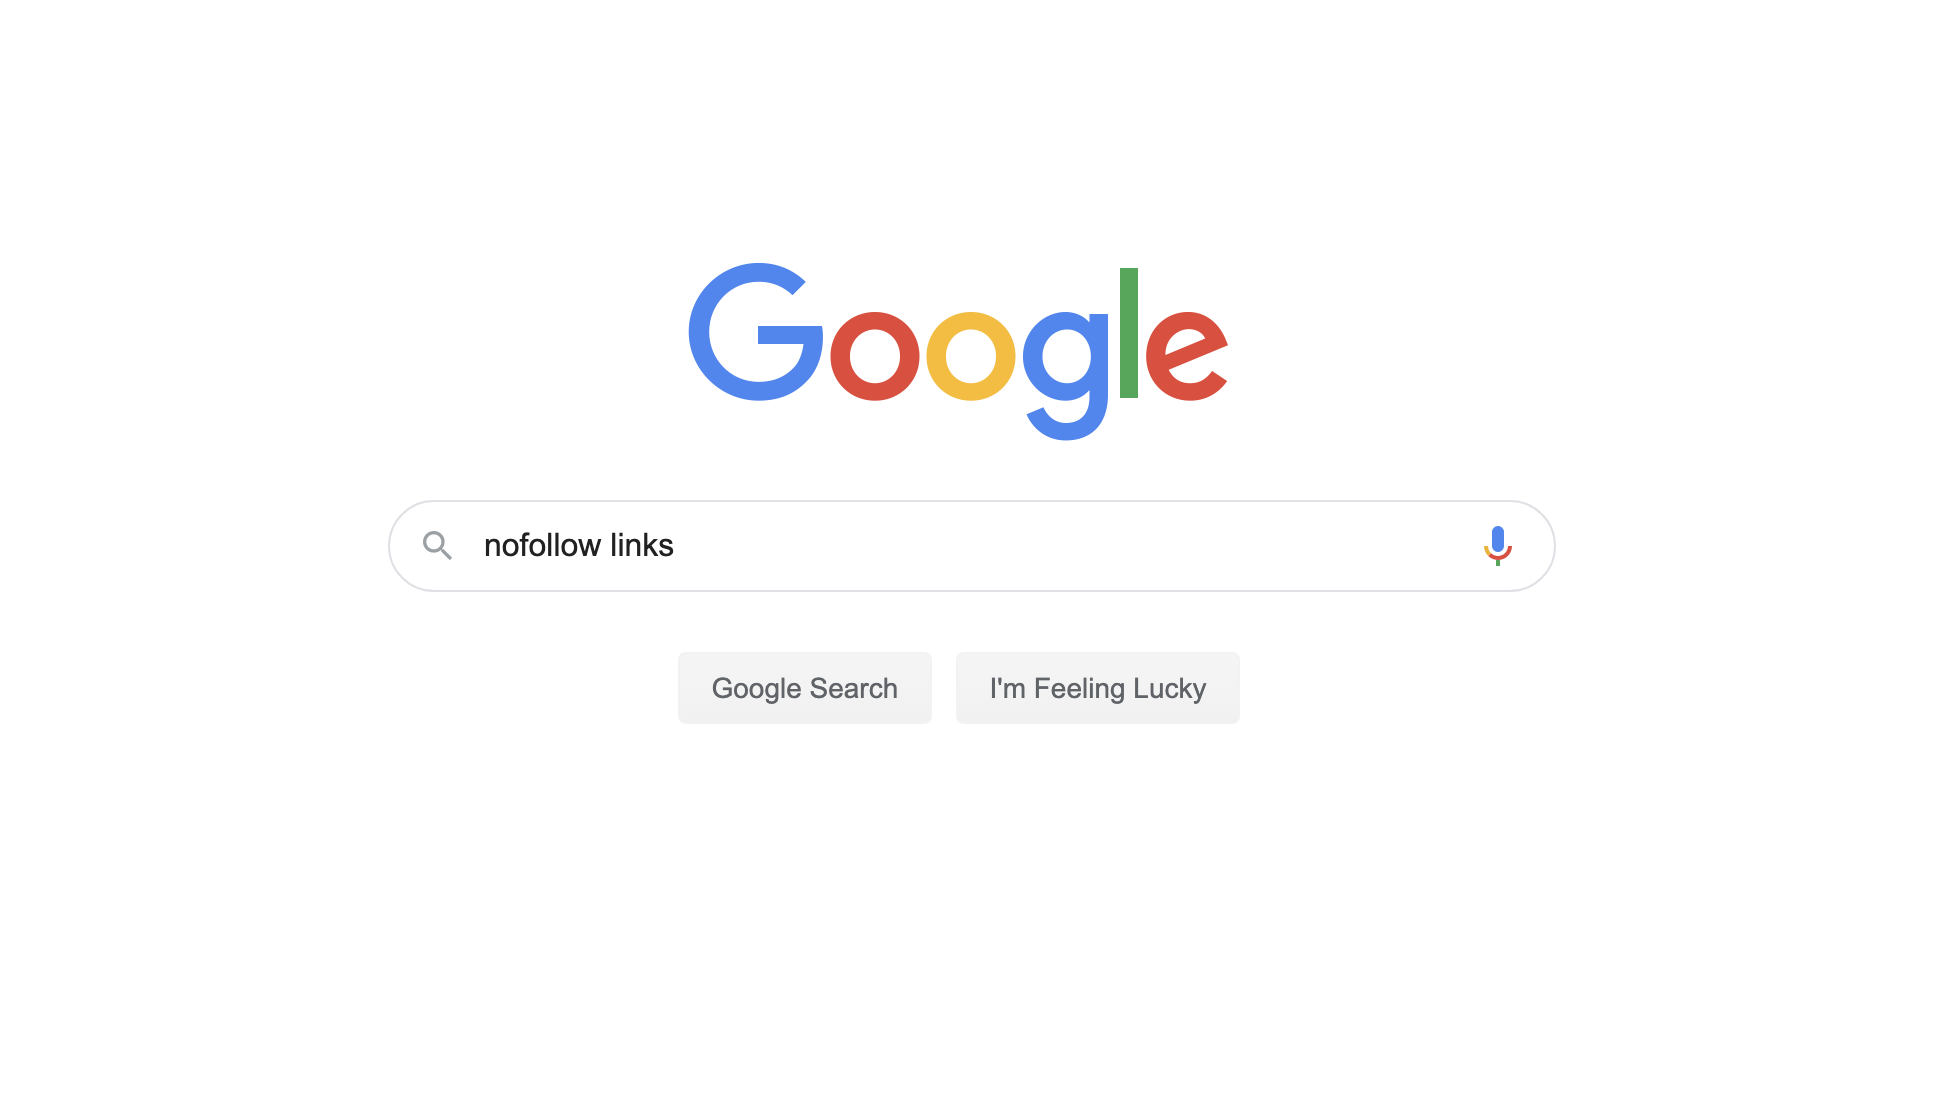 Google search for nofollow links